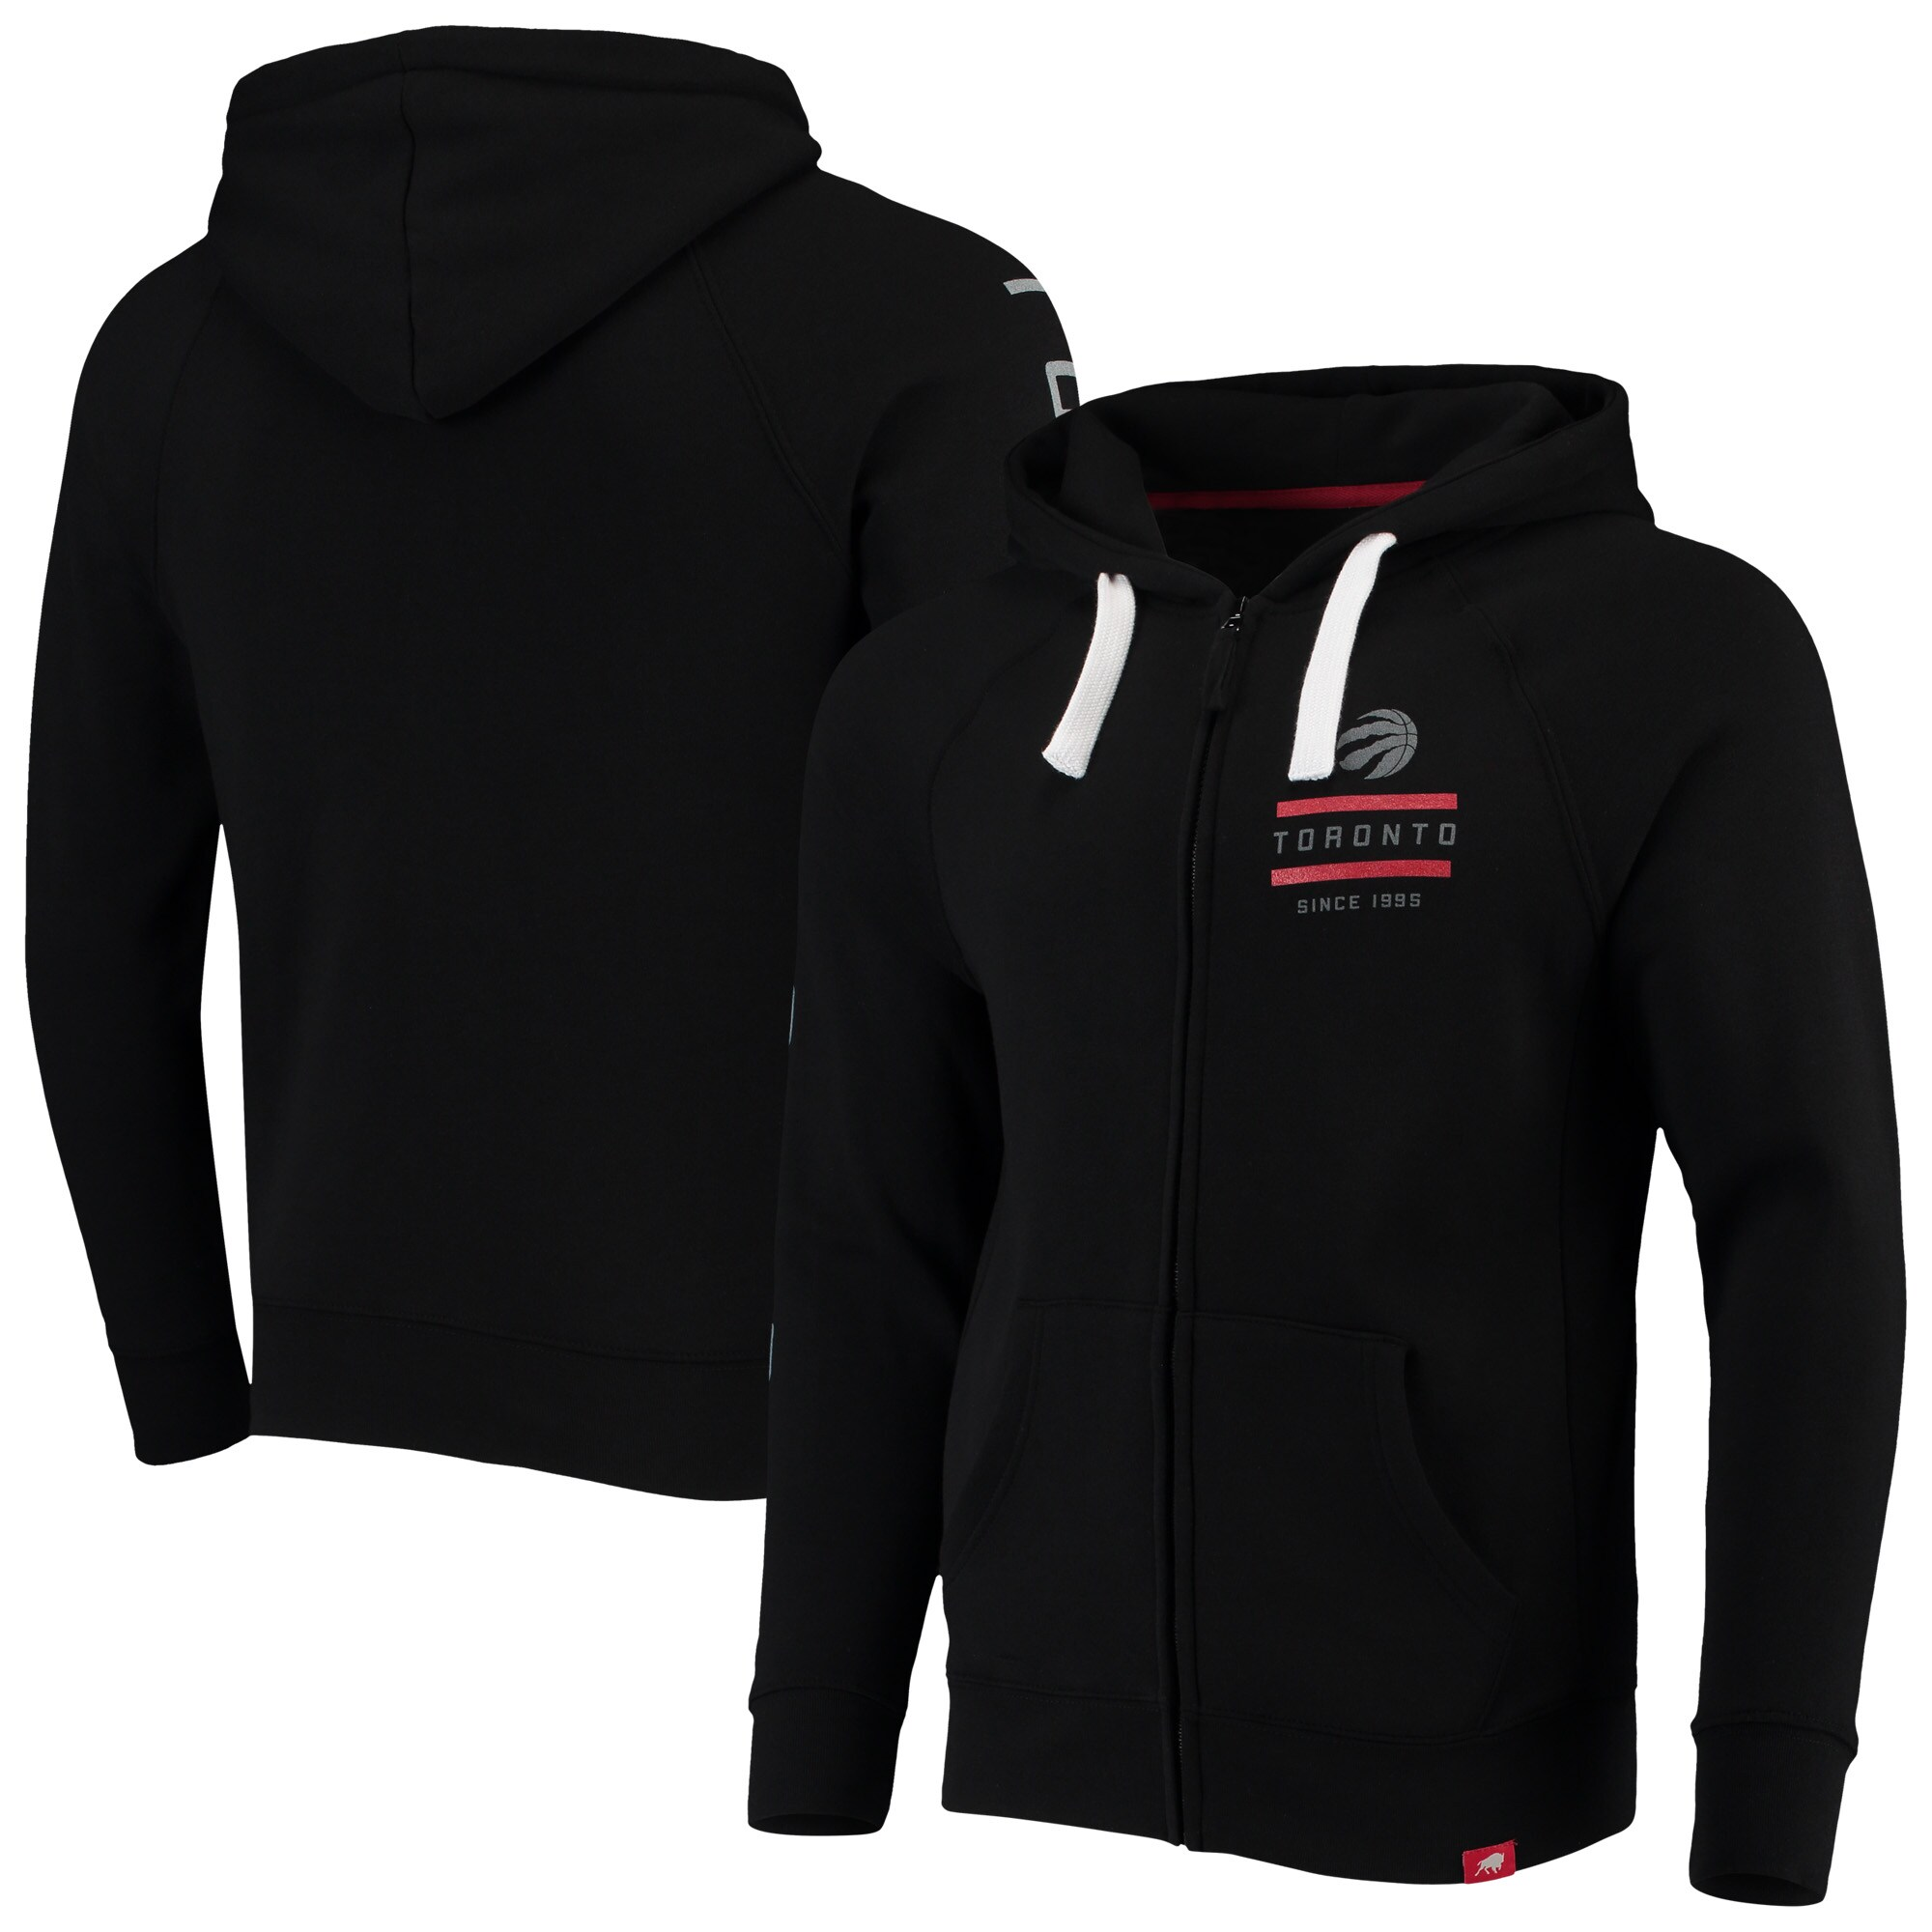 Toronto Raptors Sportiqe Heywood Comfort Tri-Blend Full-Zip Raglan Jacket - Black